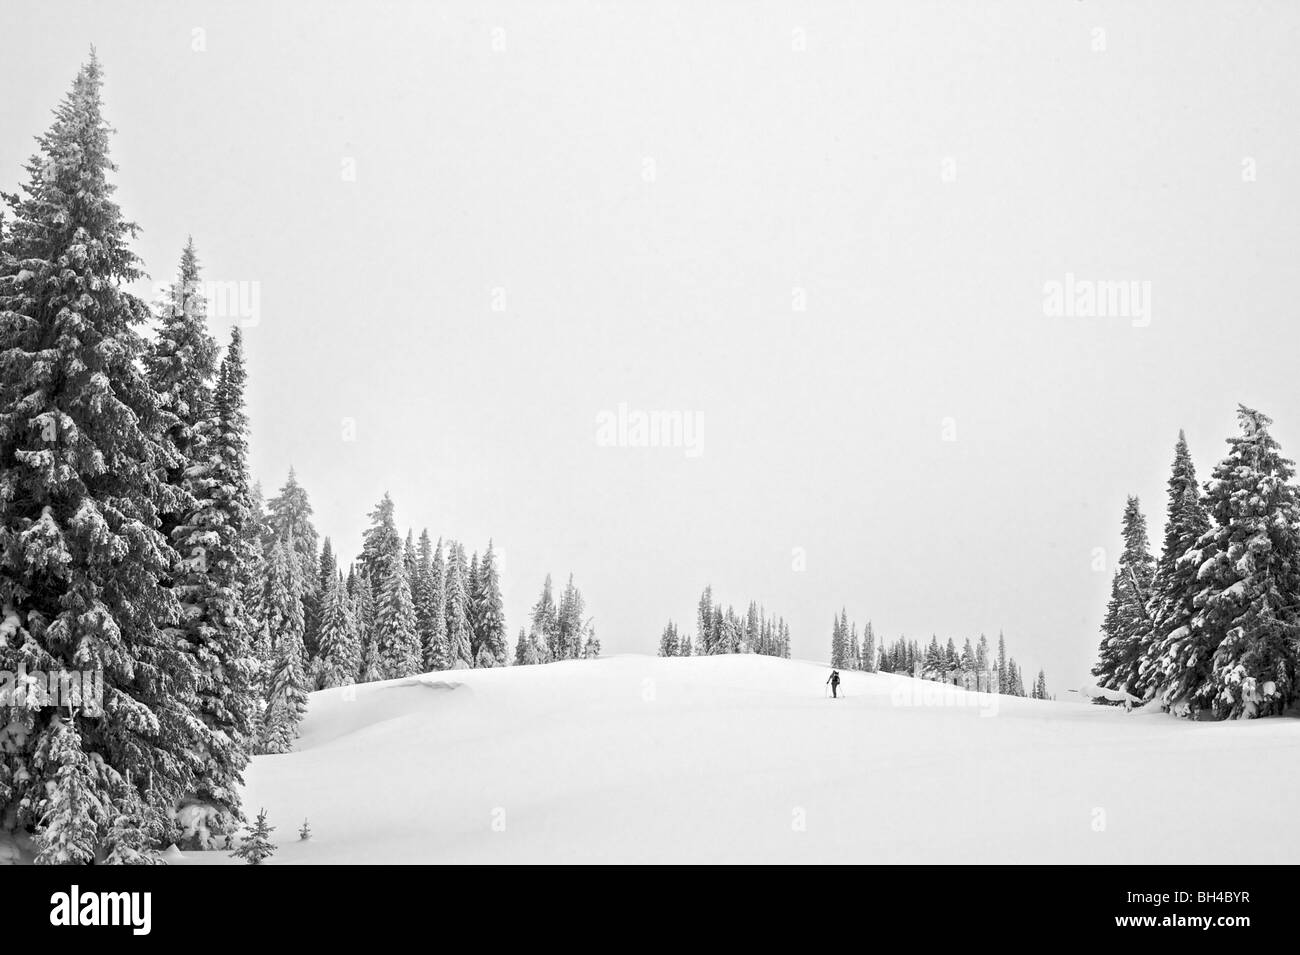 A man ski-tours through a field surrounded by trees in the Eastern Idaho backcountry. - Stock Image